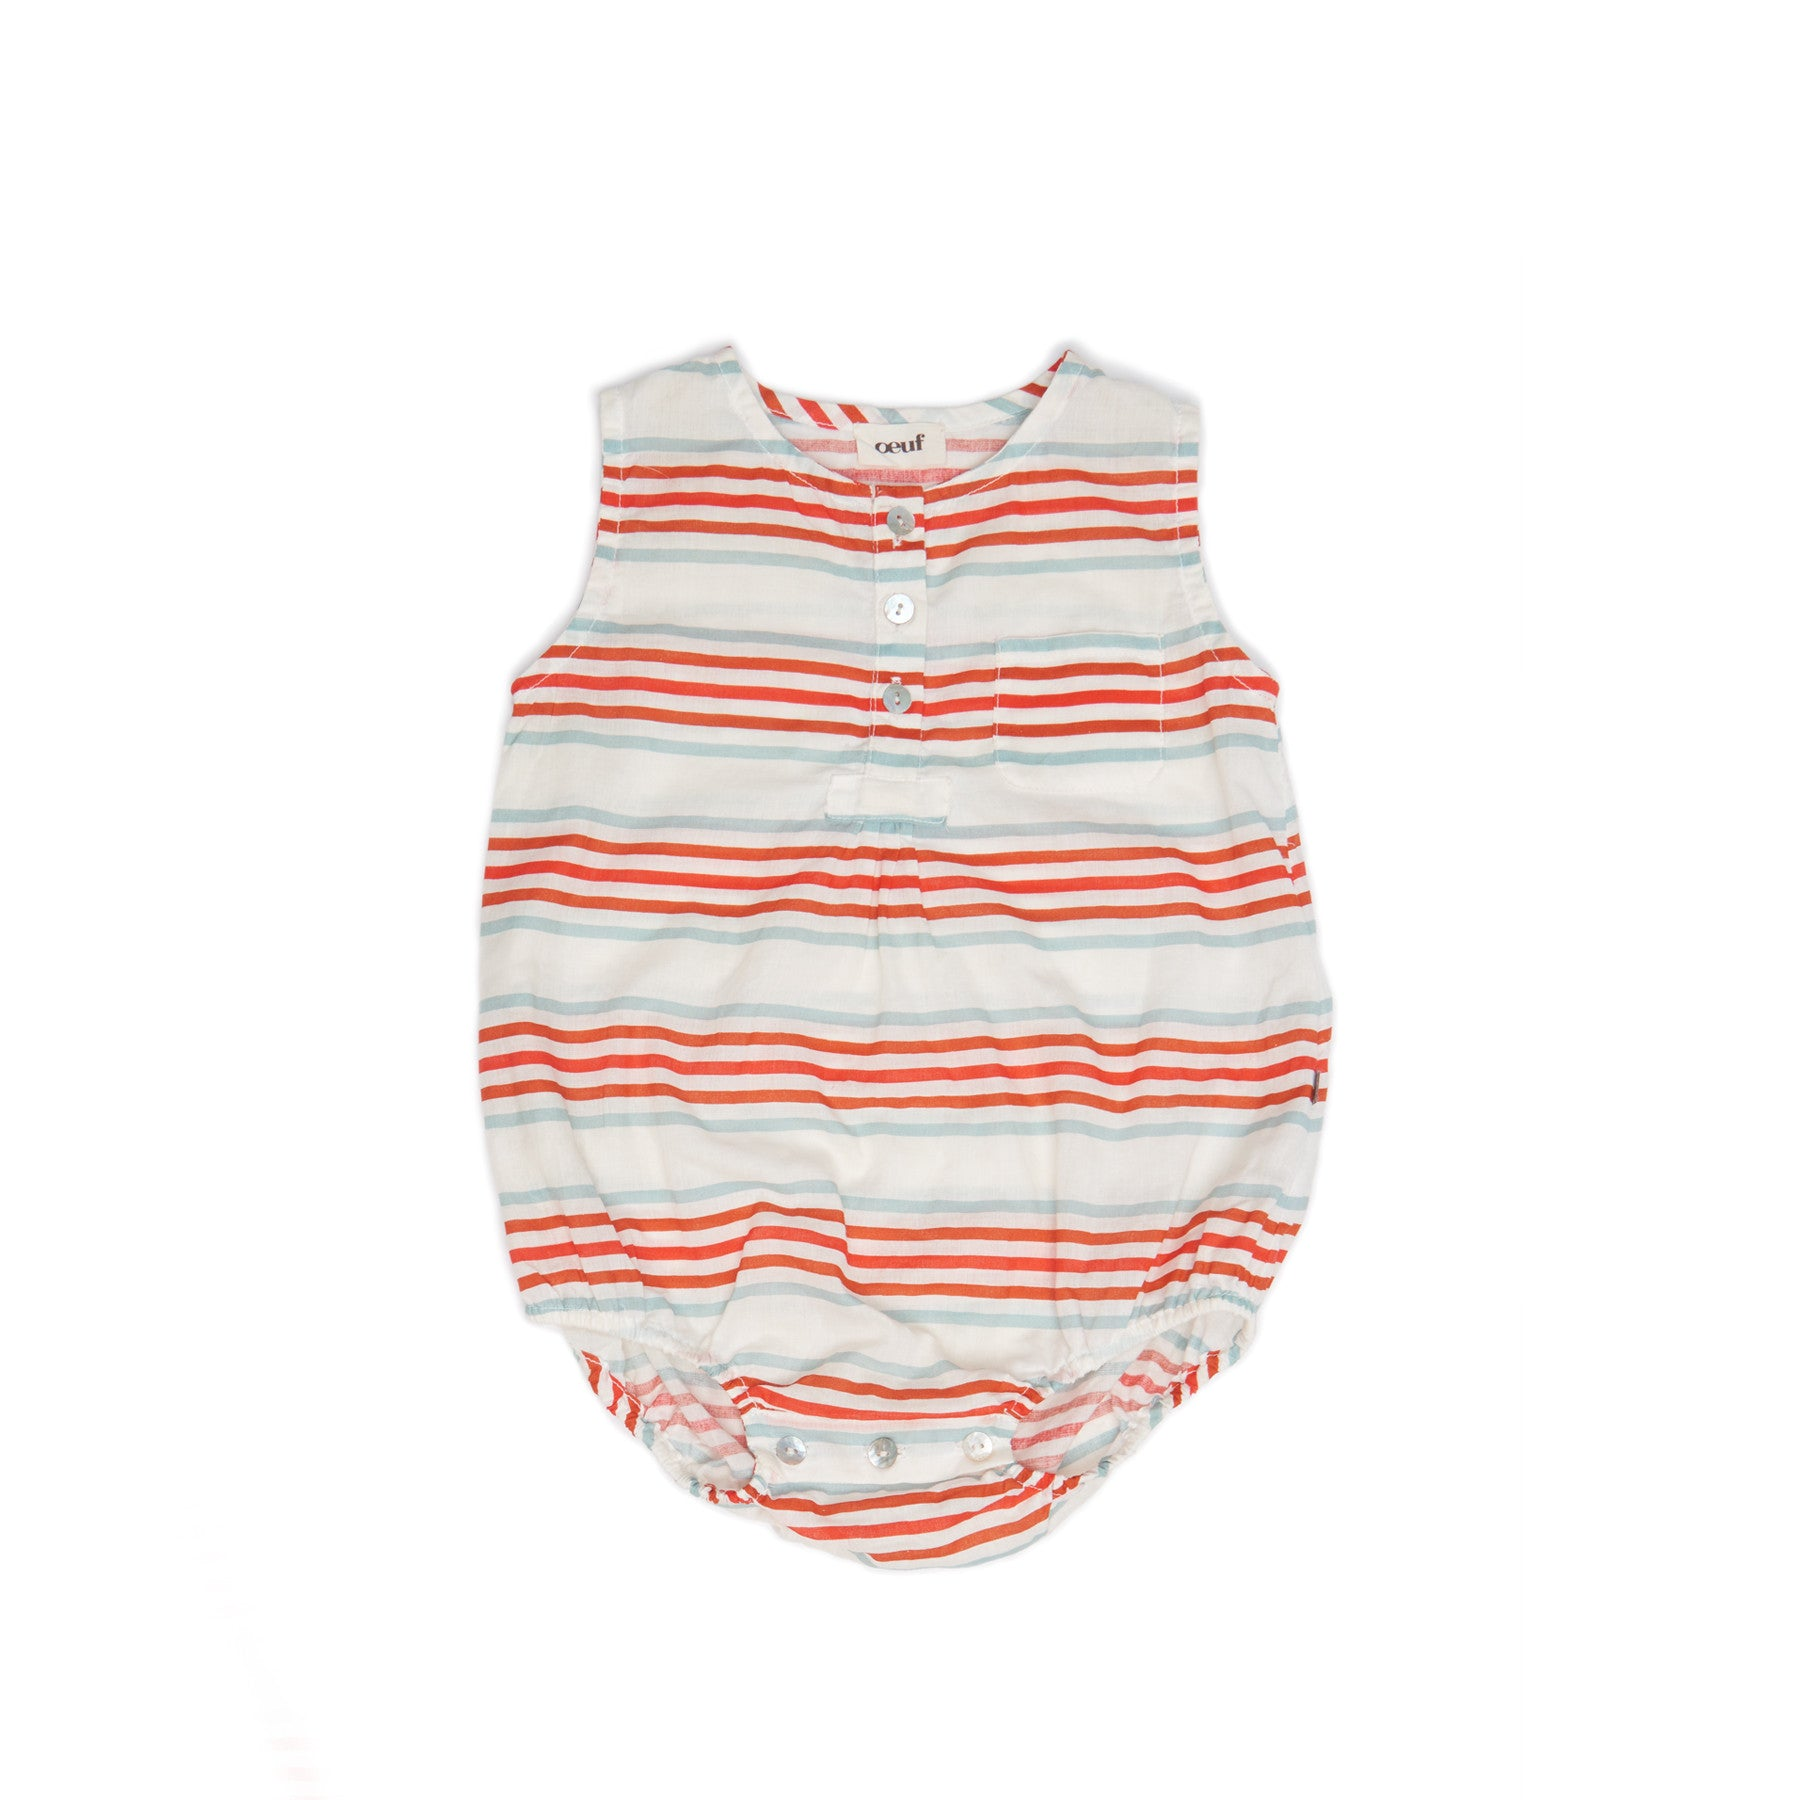 Oeuf Multi Stripes Romper - Ladida